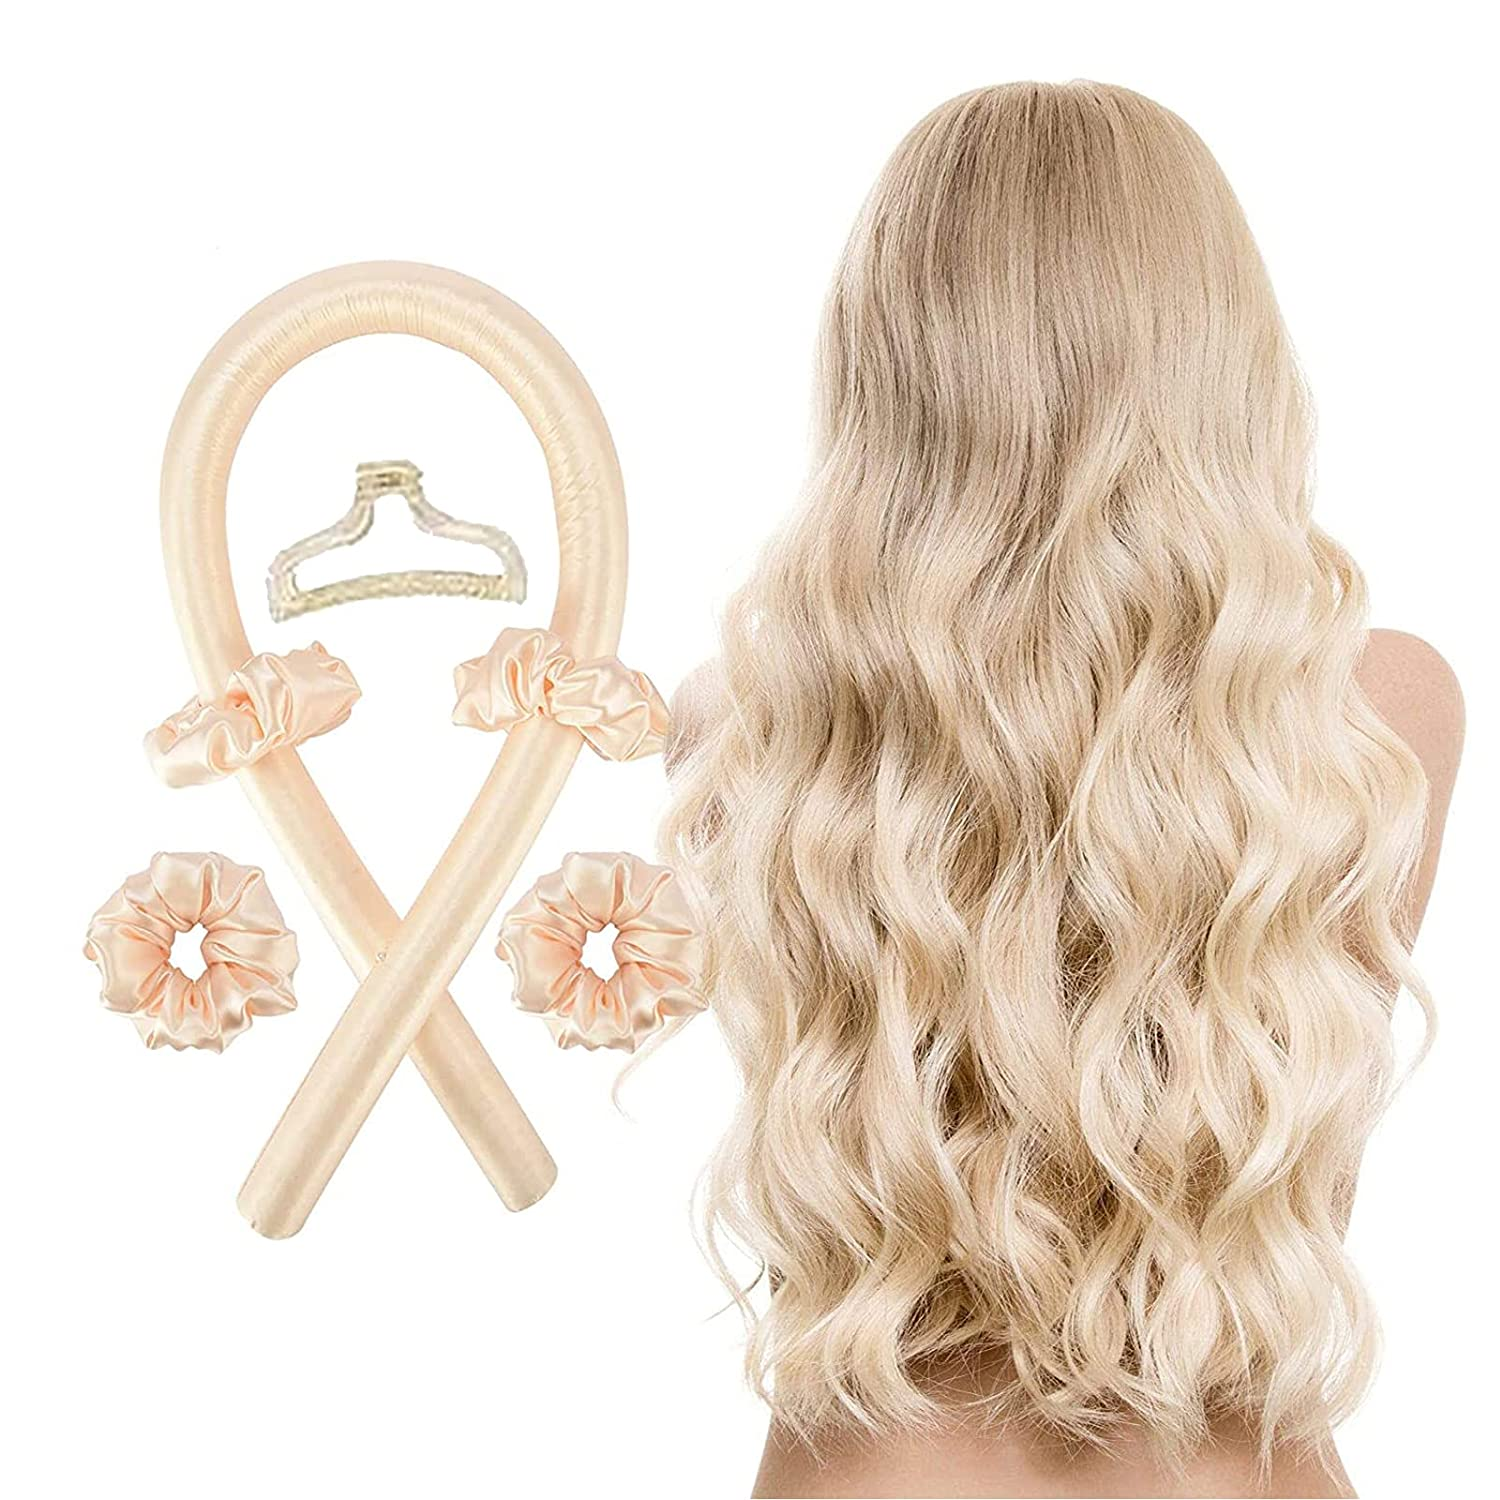 Heatless Hair Curlers Women Soft And Foam Ranking TOP7 Flexi Direct sale of manufacturer Ro Rollers